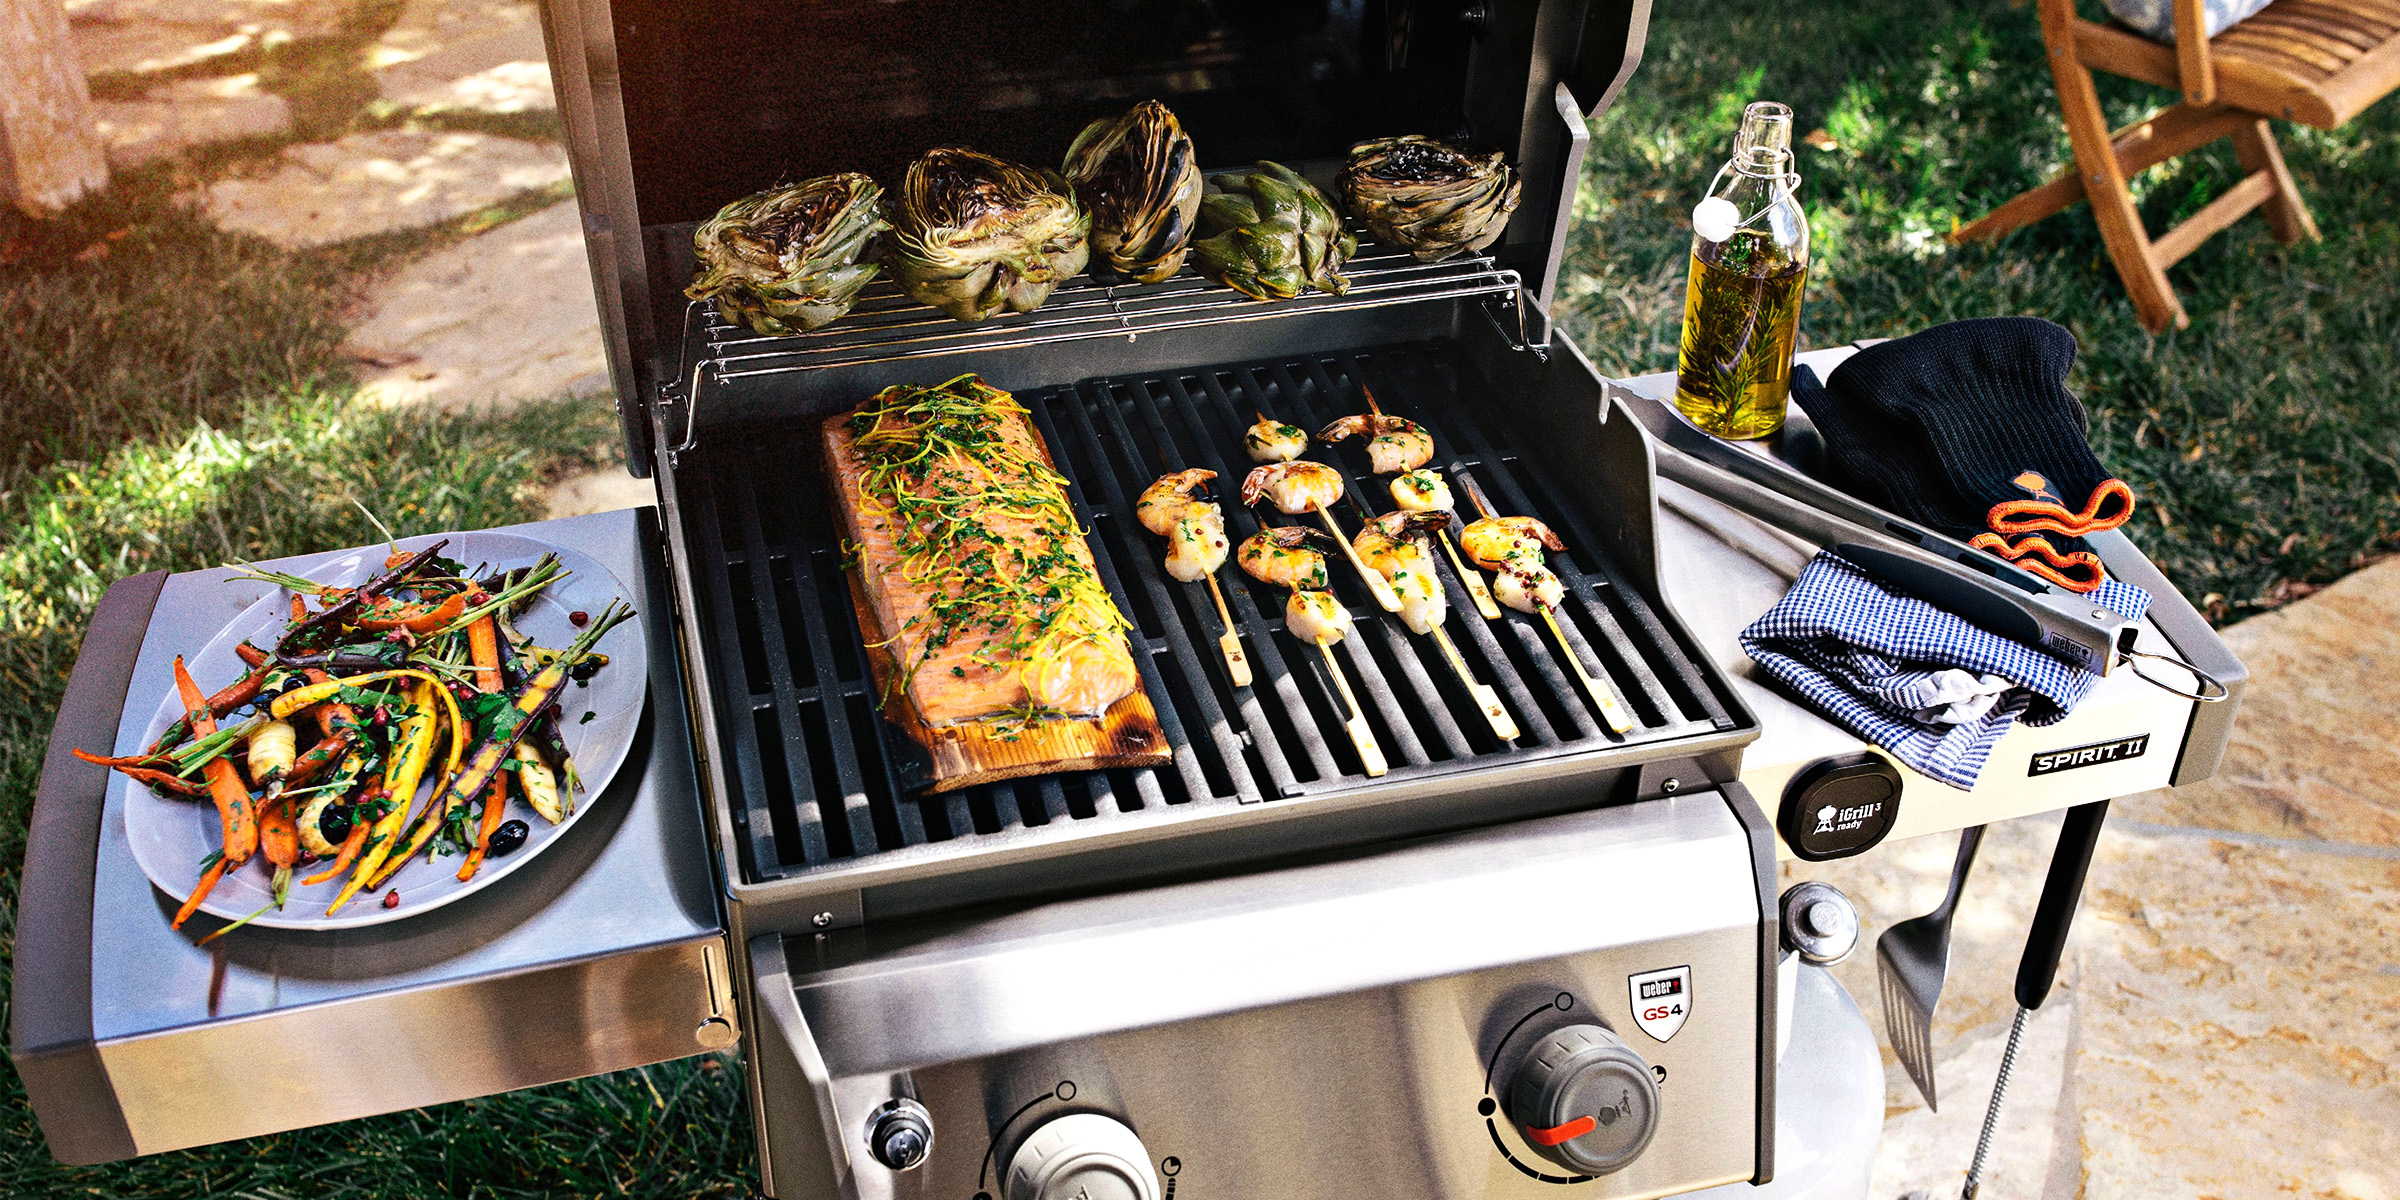 7 best gas grills of 2021 according to